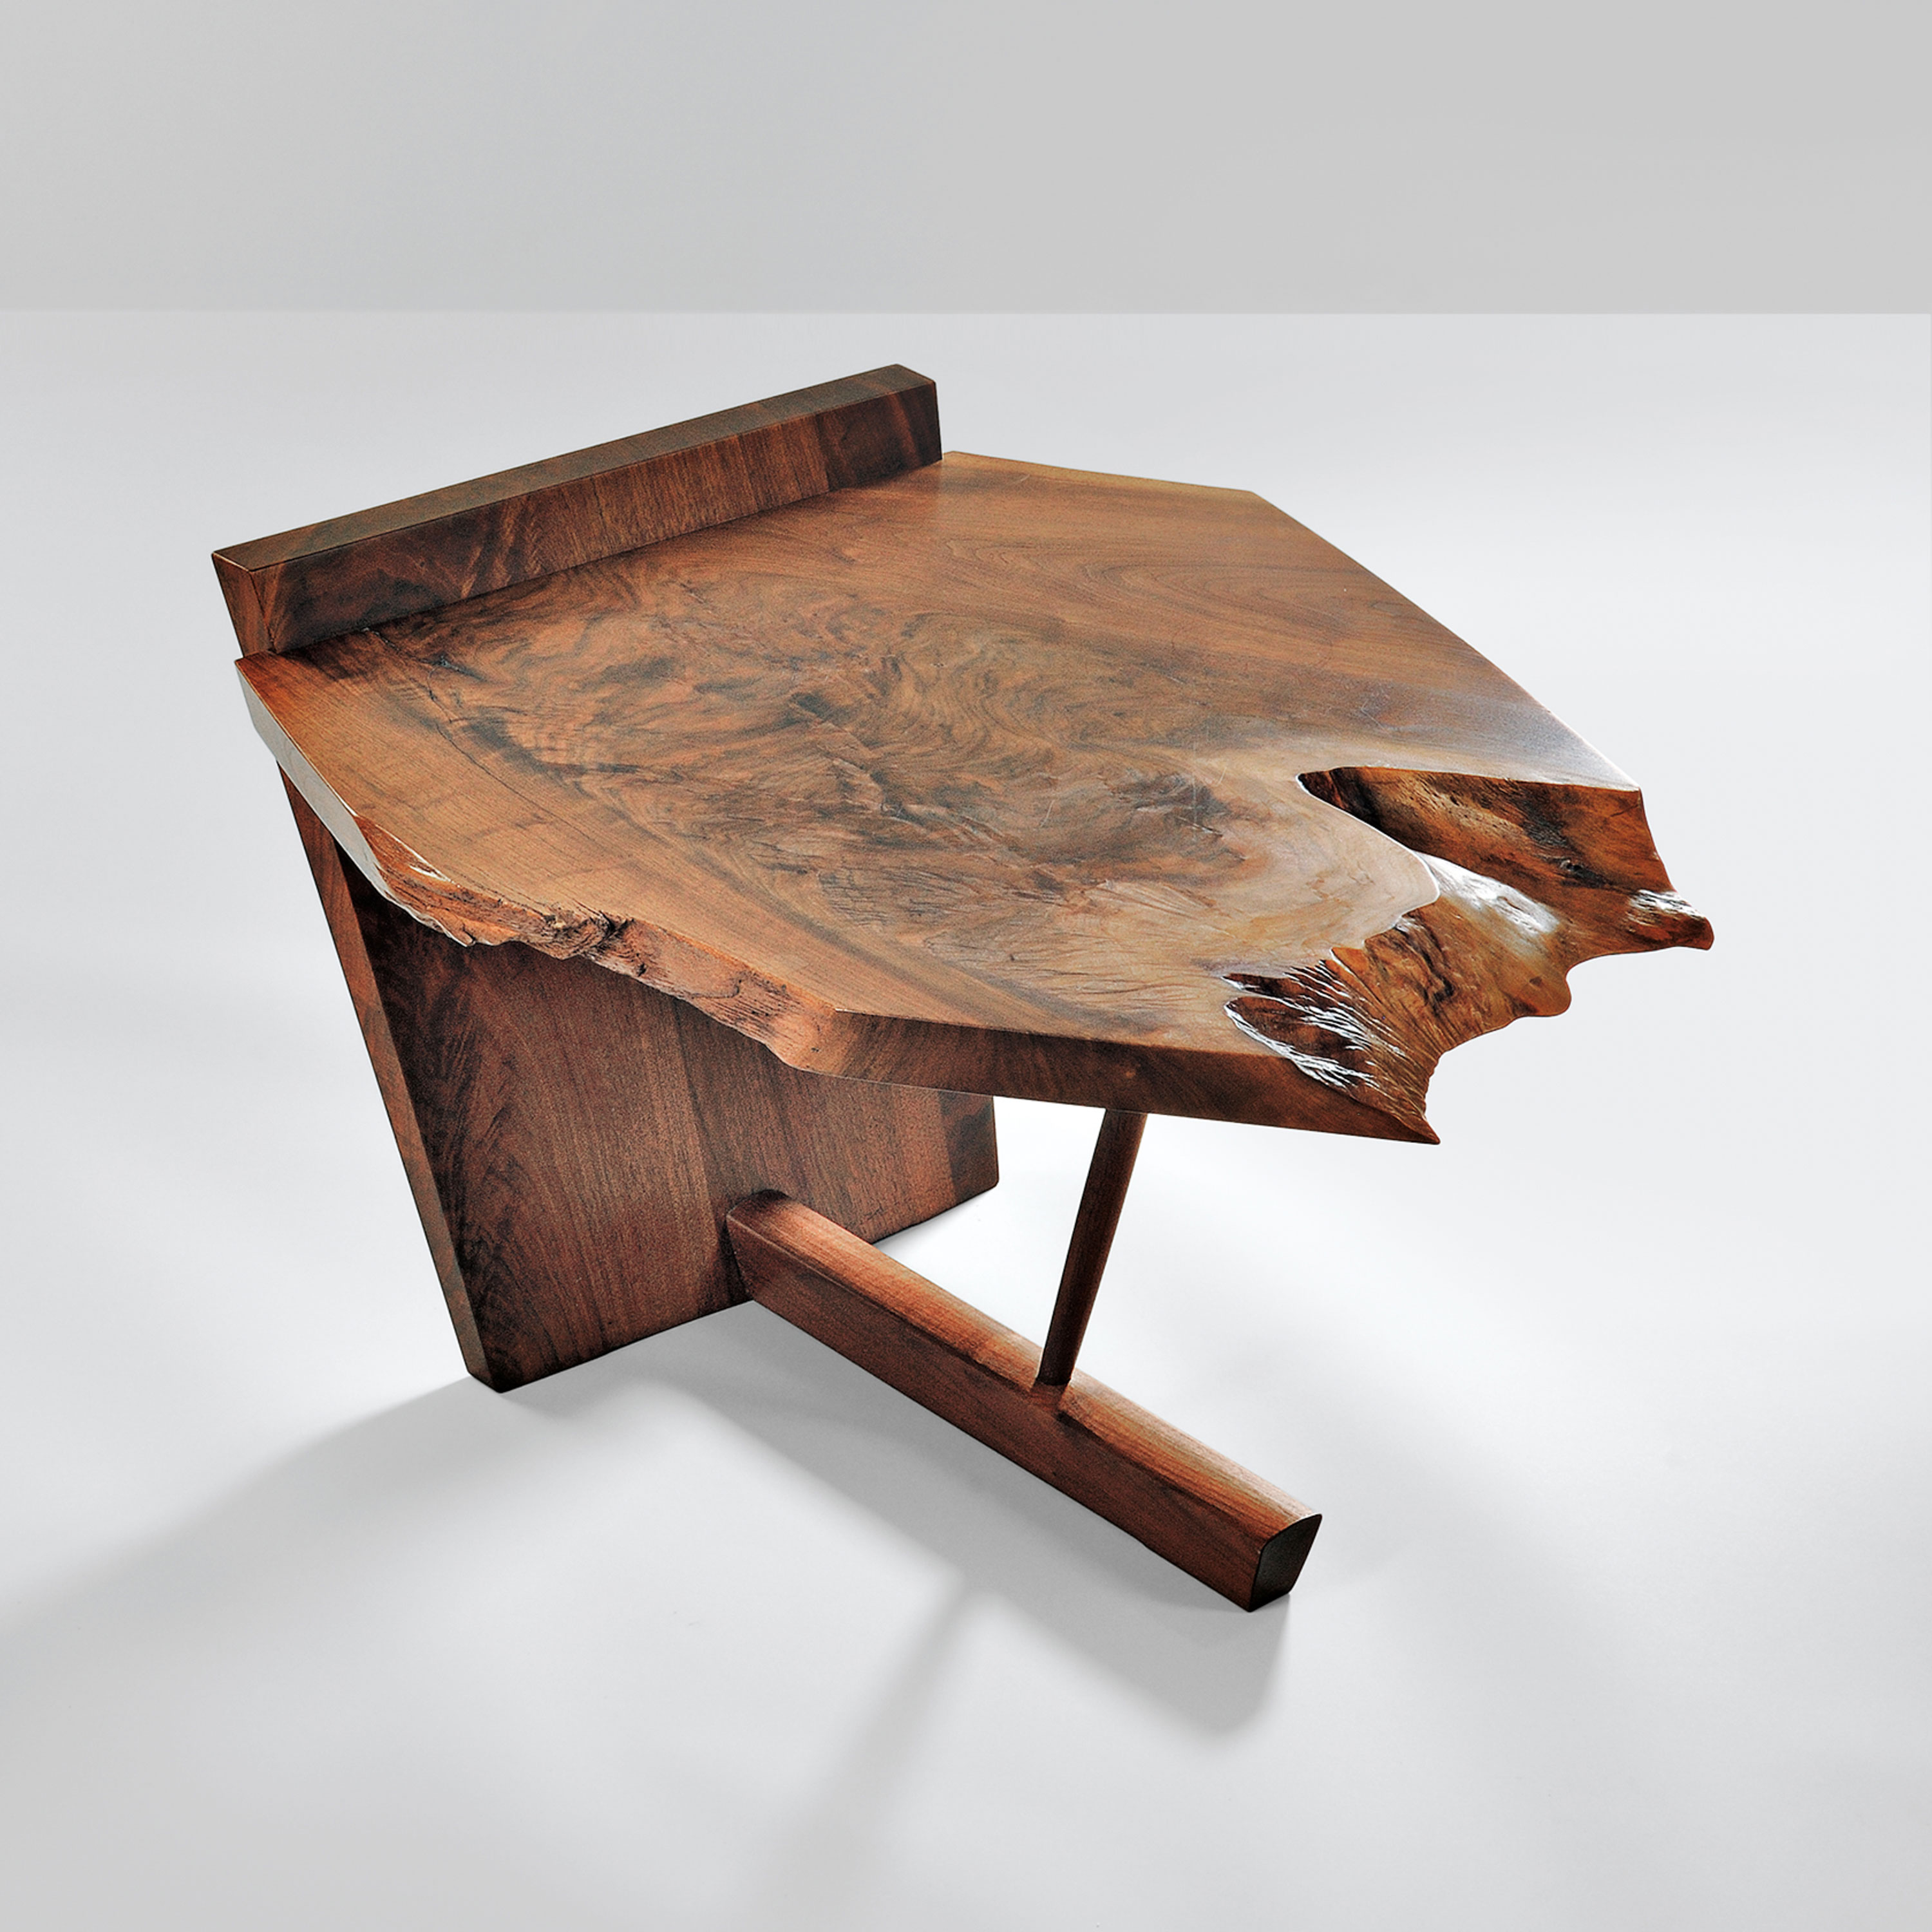 A a low table, 1976, cut from a slab of American black walnut